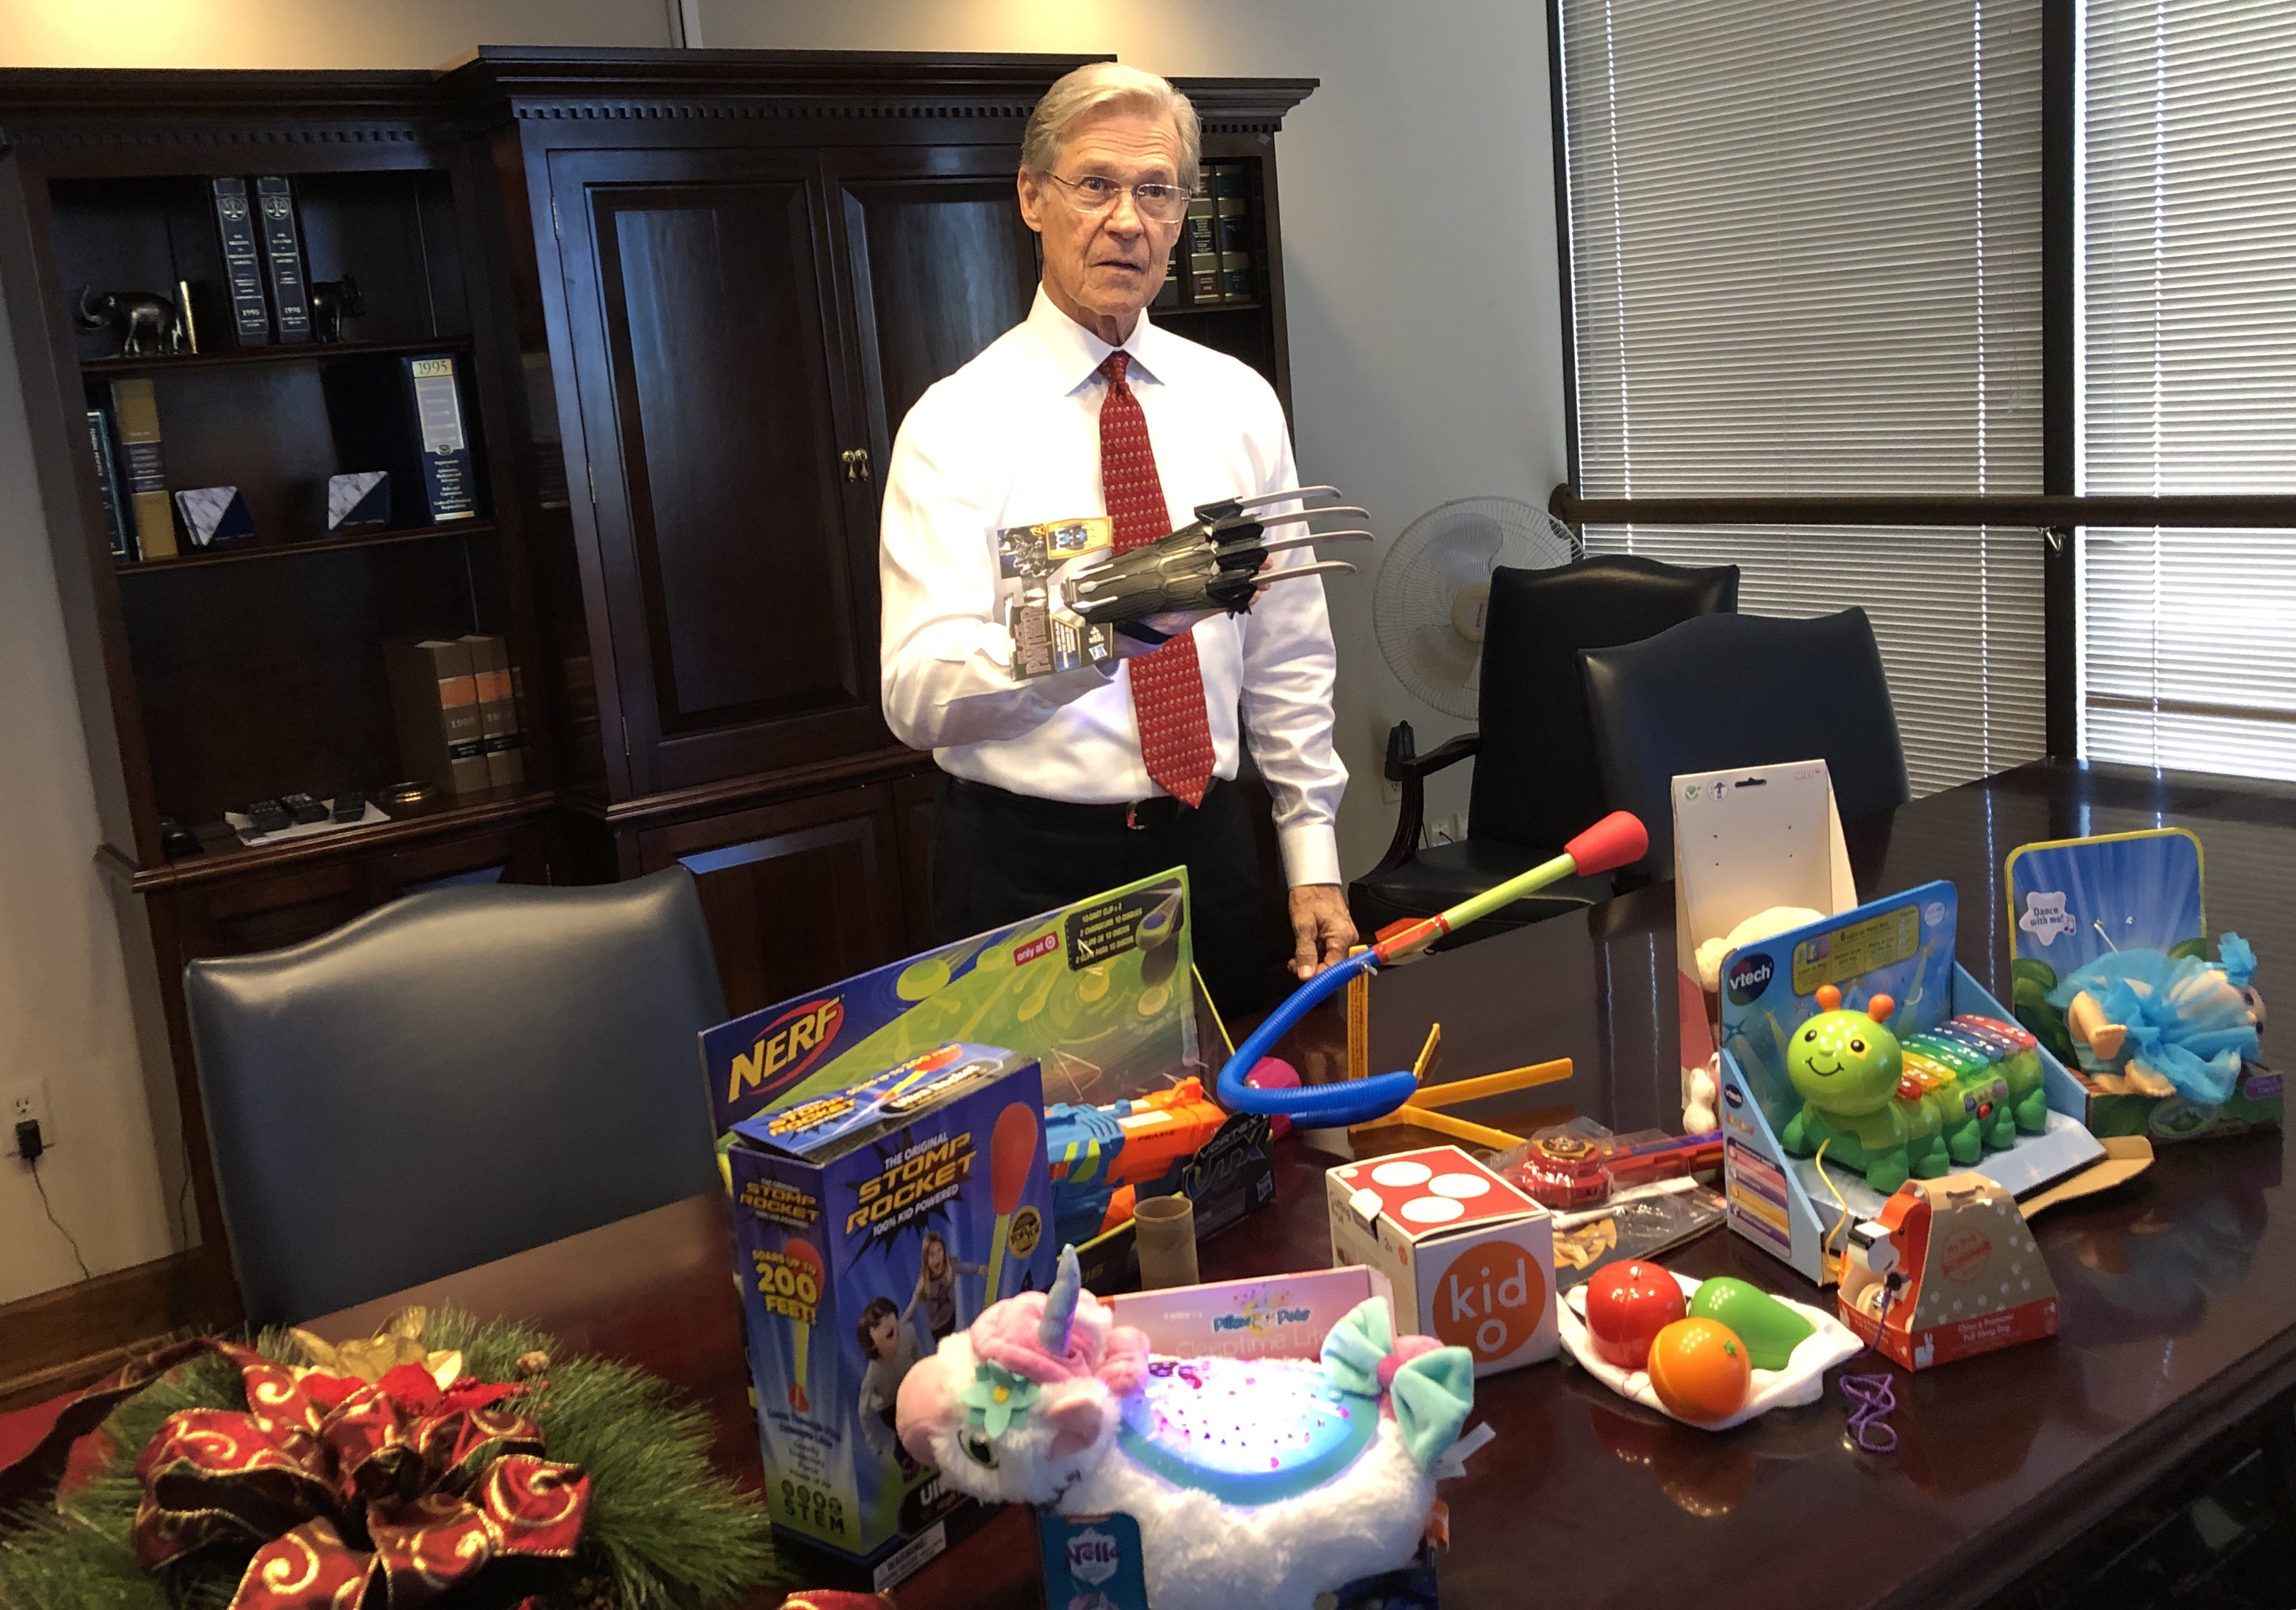 Wayne Hogan Spreads the Word about Dangerous Toys